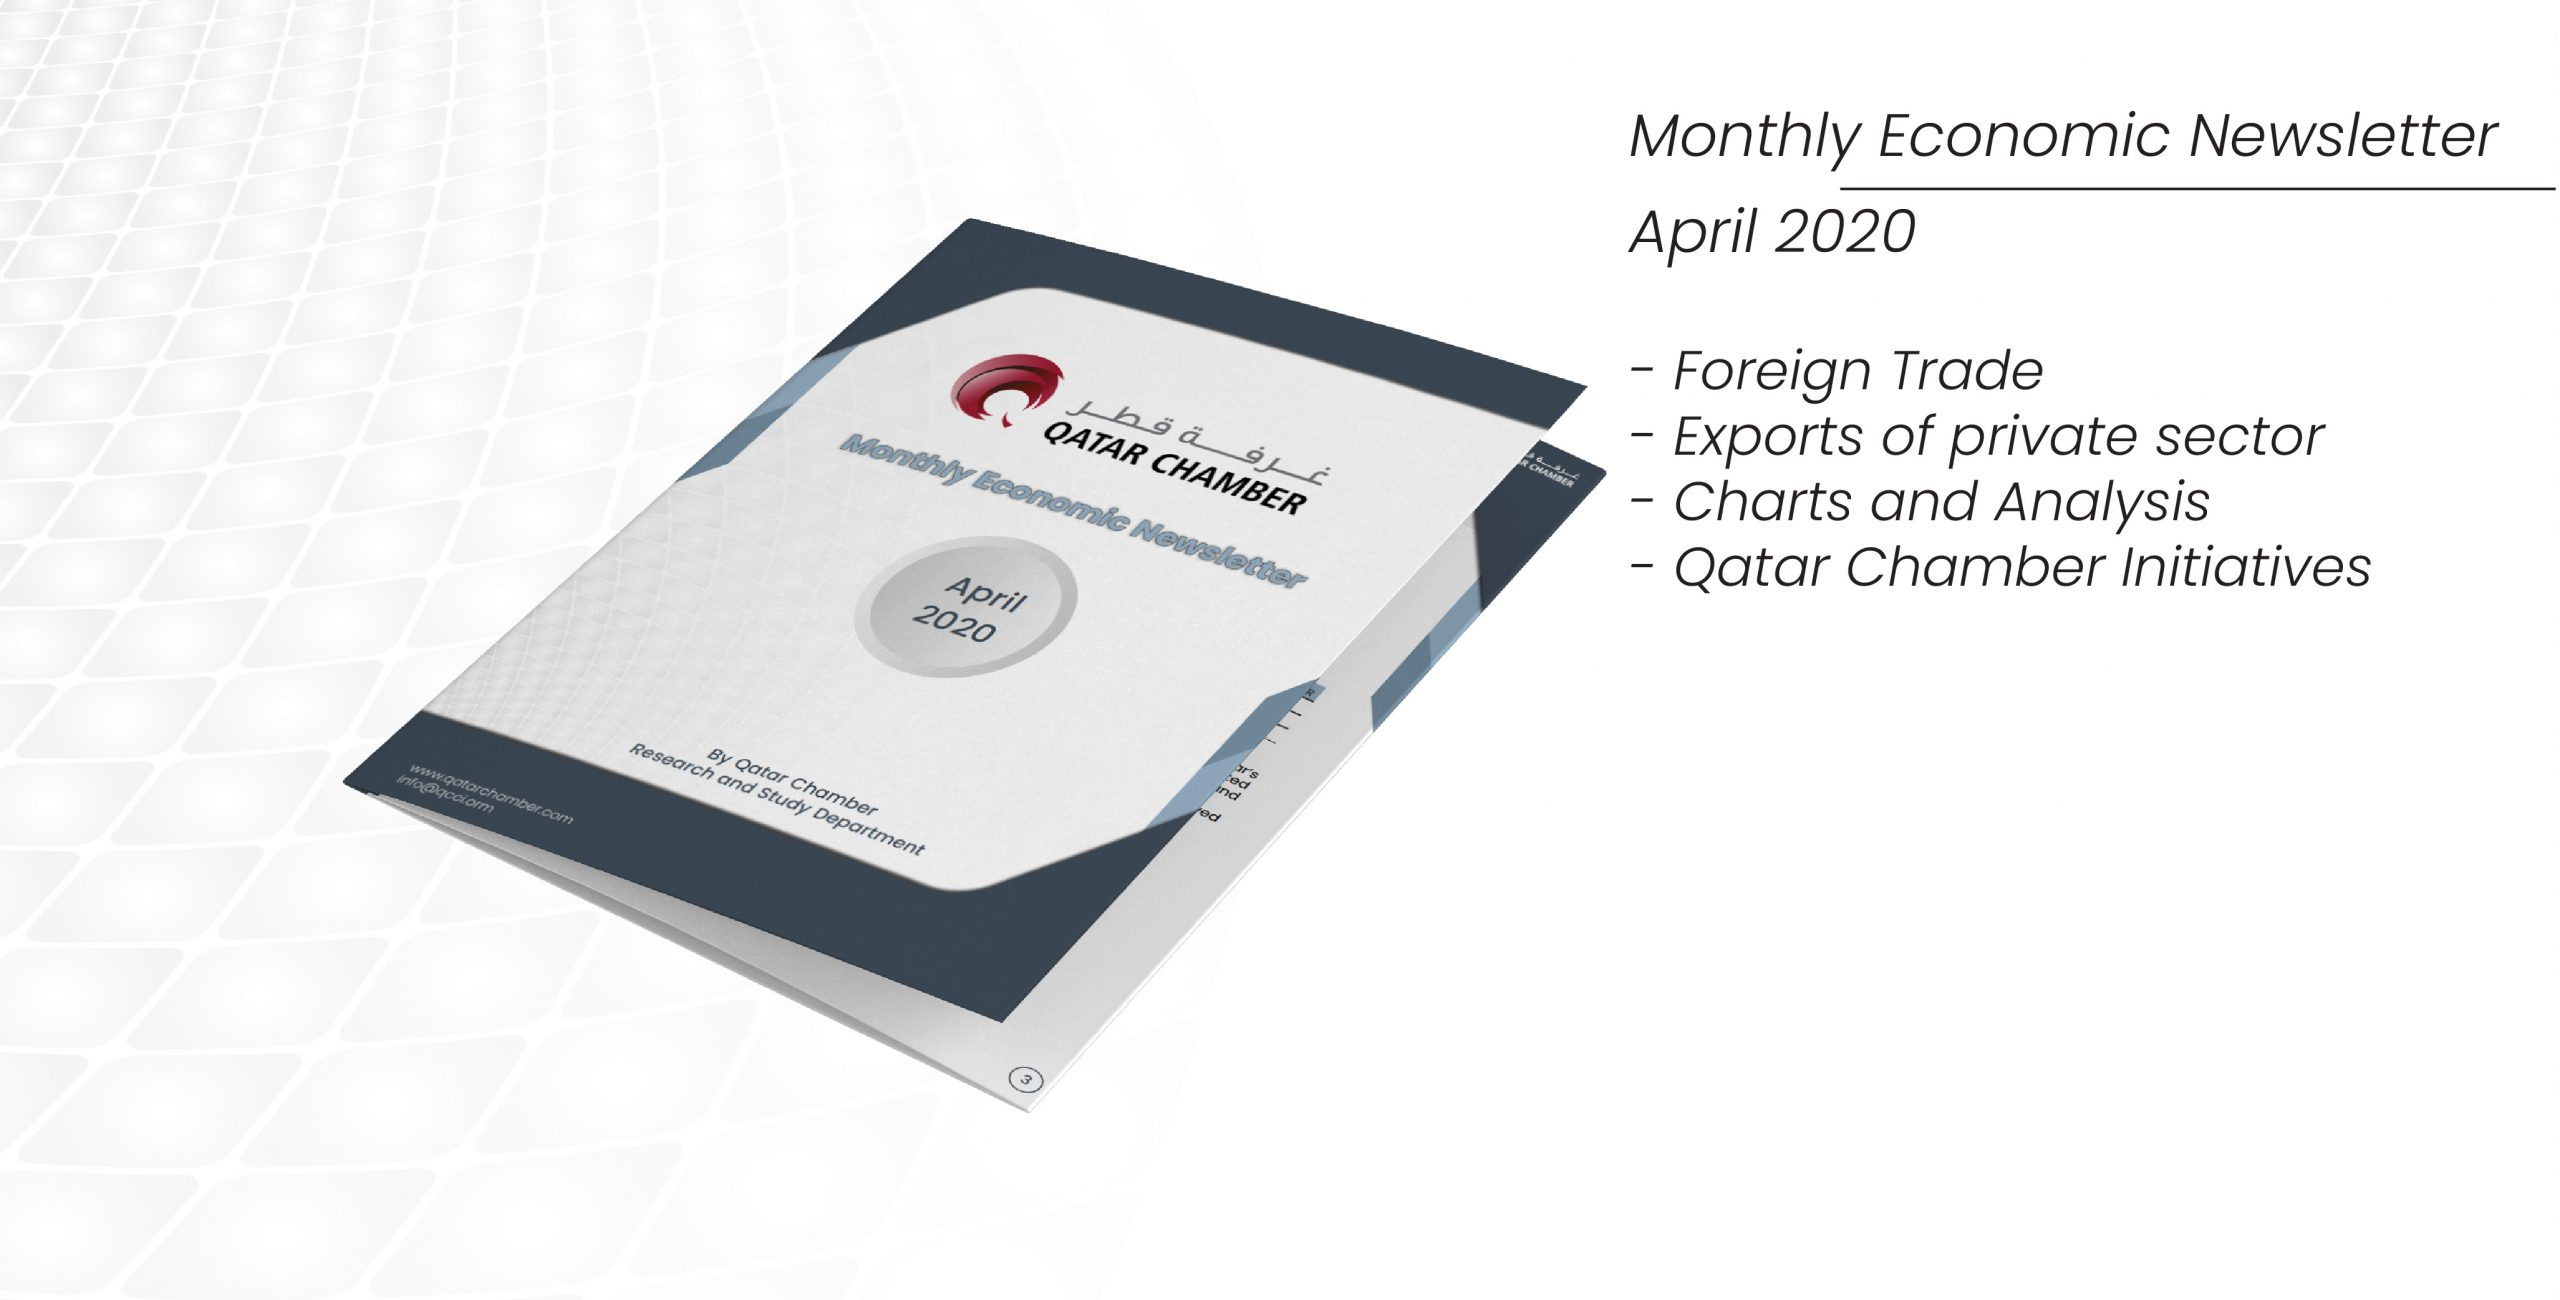 Private sector exports hit QR 2bn in February, says Qatar Chamber